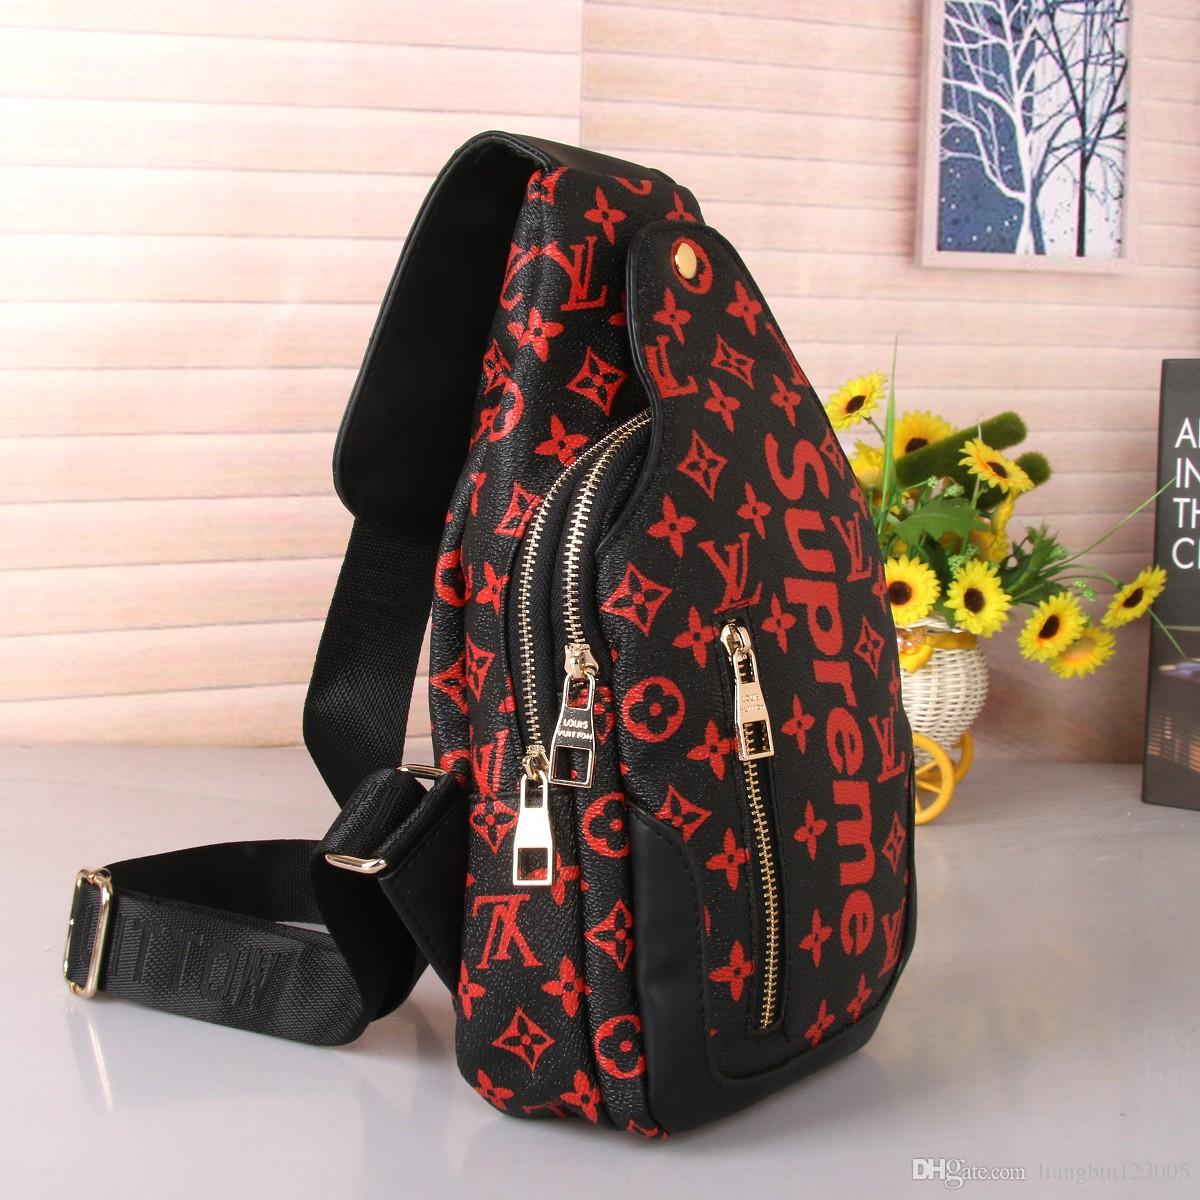 red sugao waist bag print sport men and women travel bag fanny pack belt chest bag running phone purse sport outdoor high quality